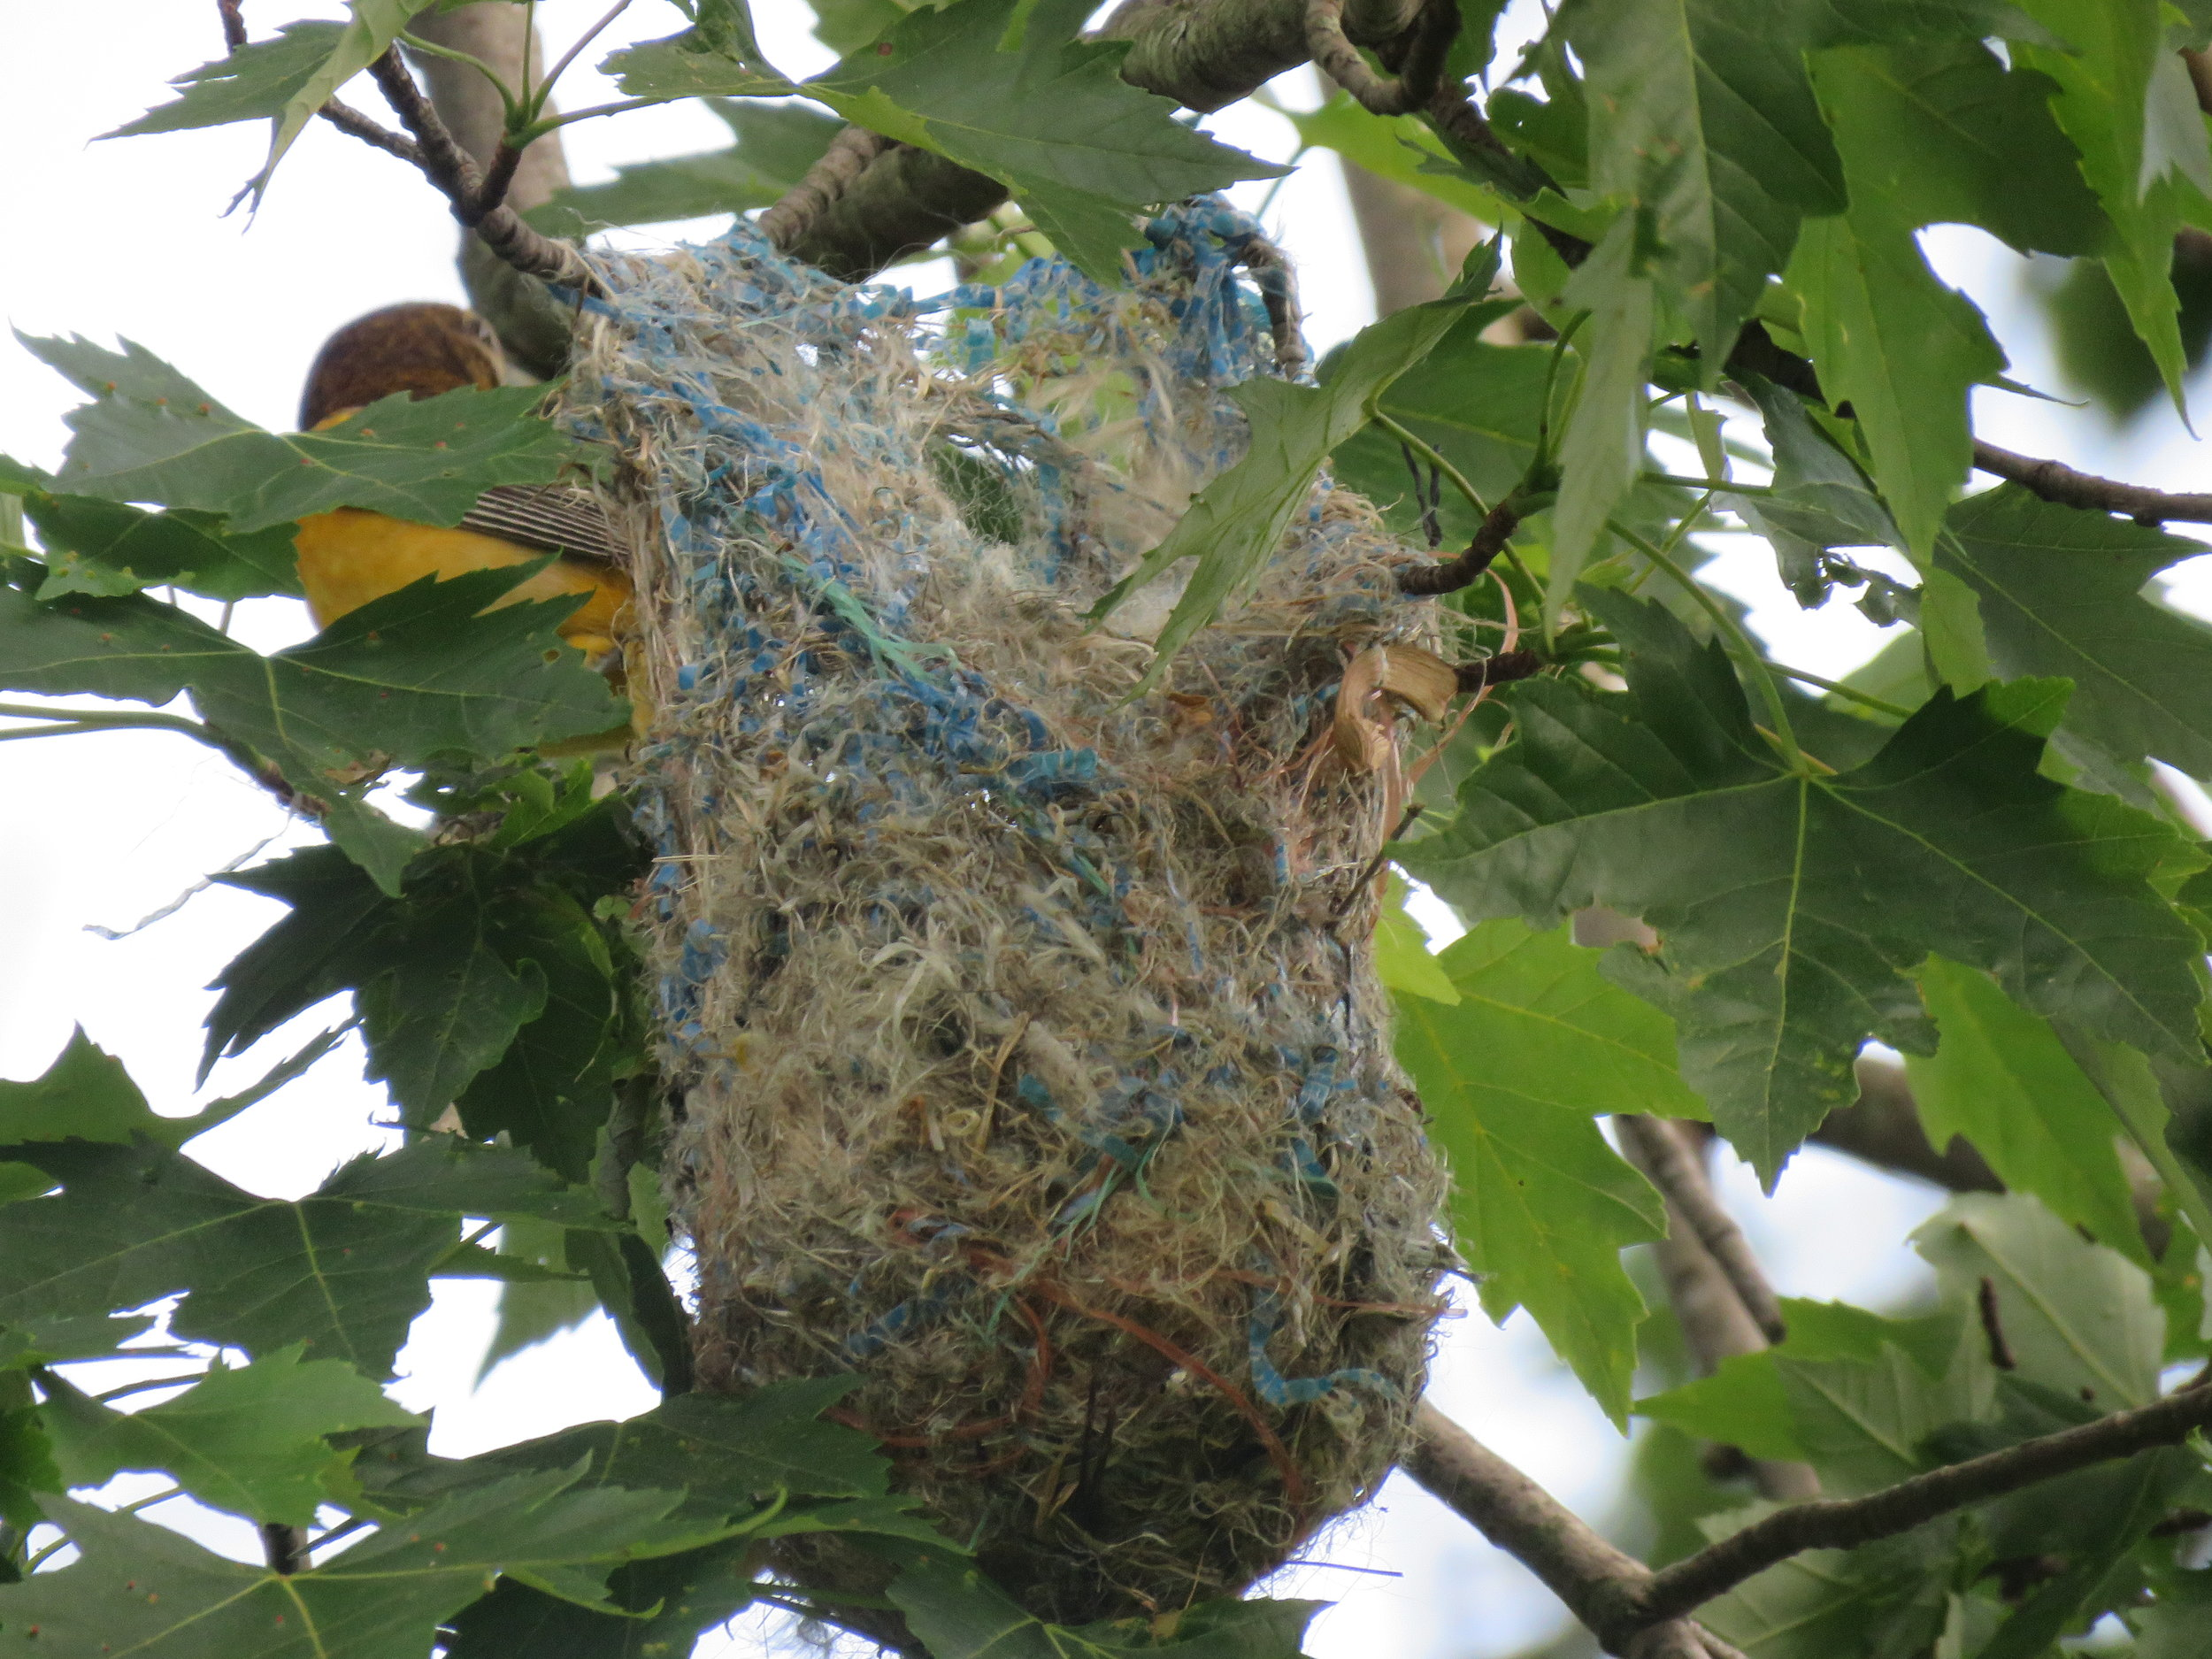 F Baltimore Oriole at nest